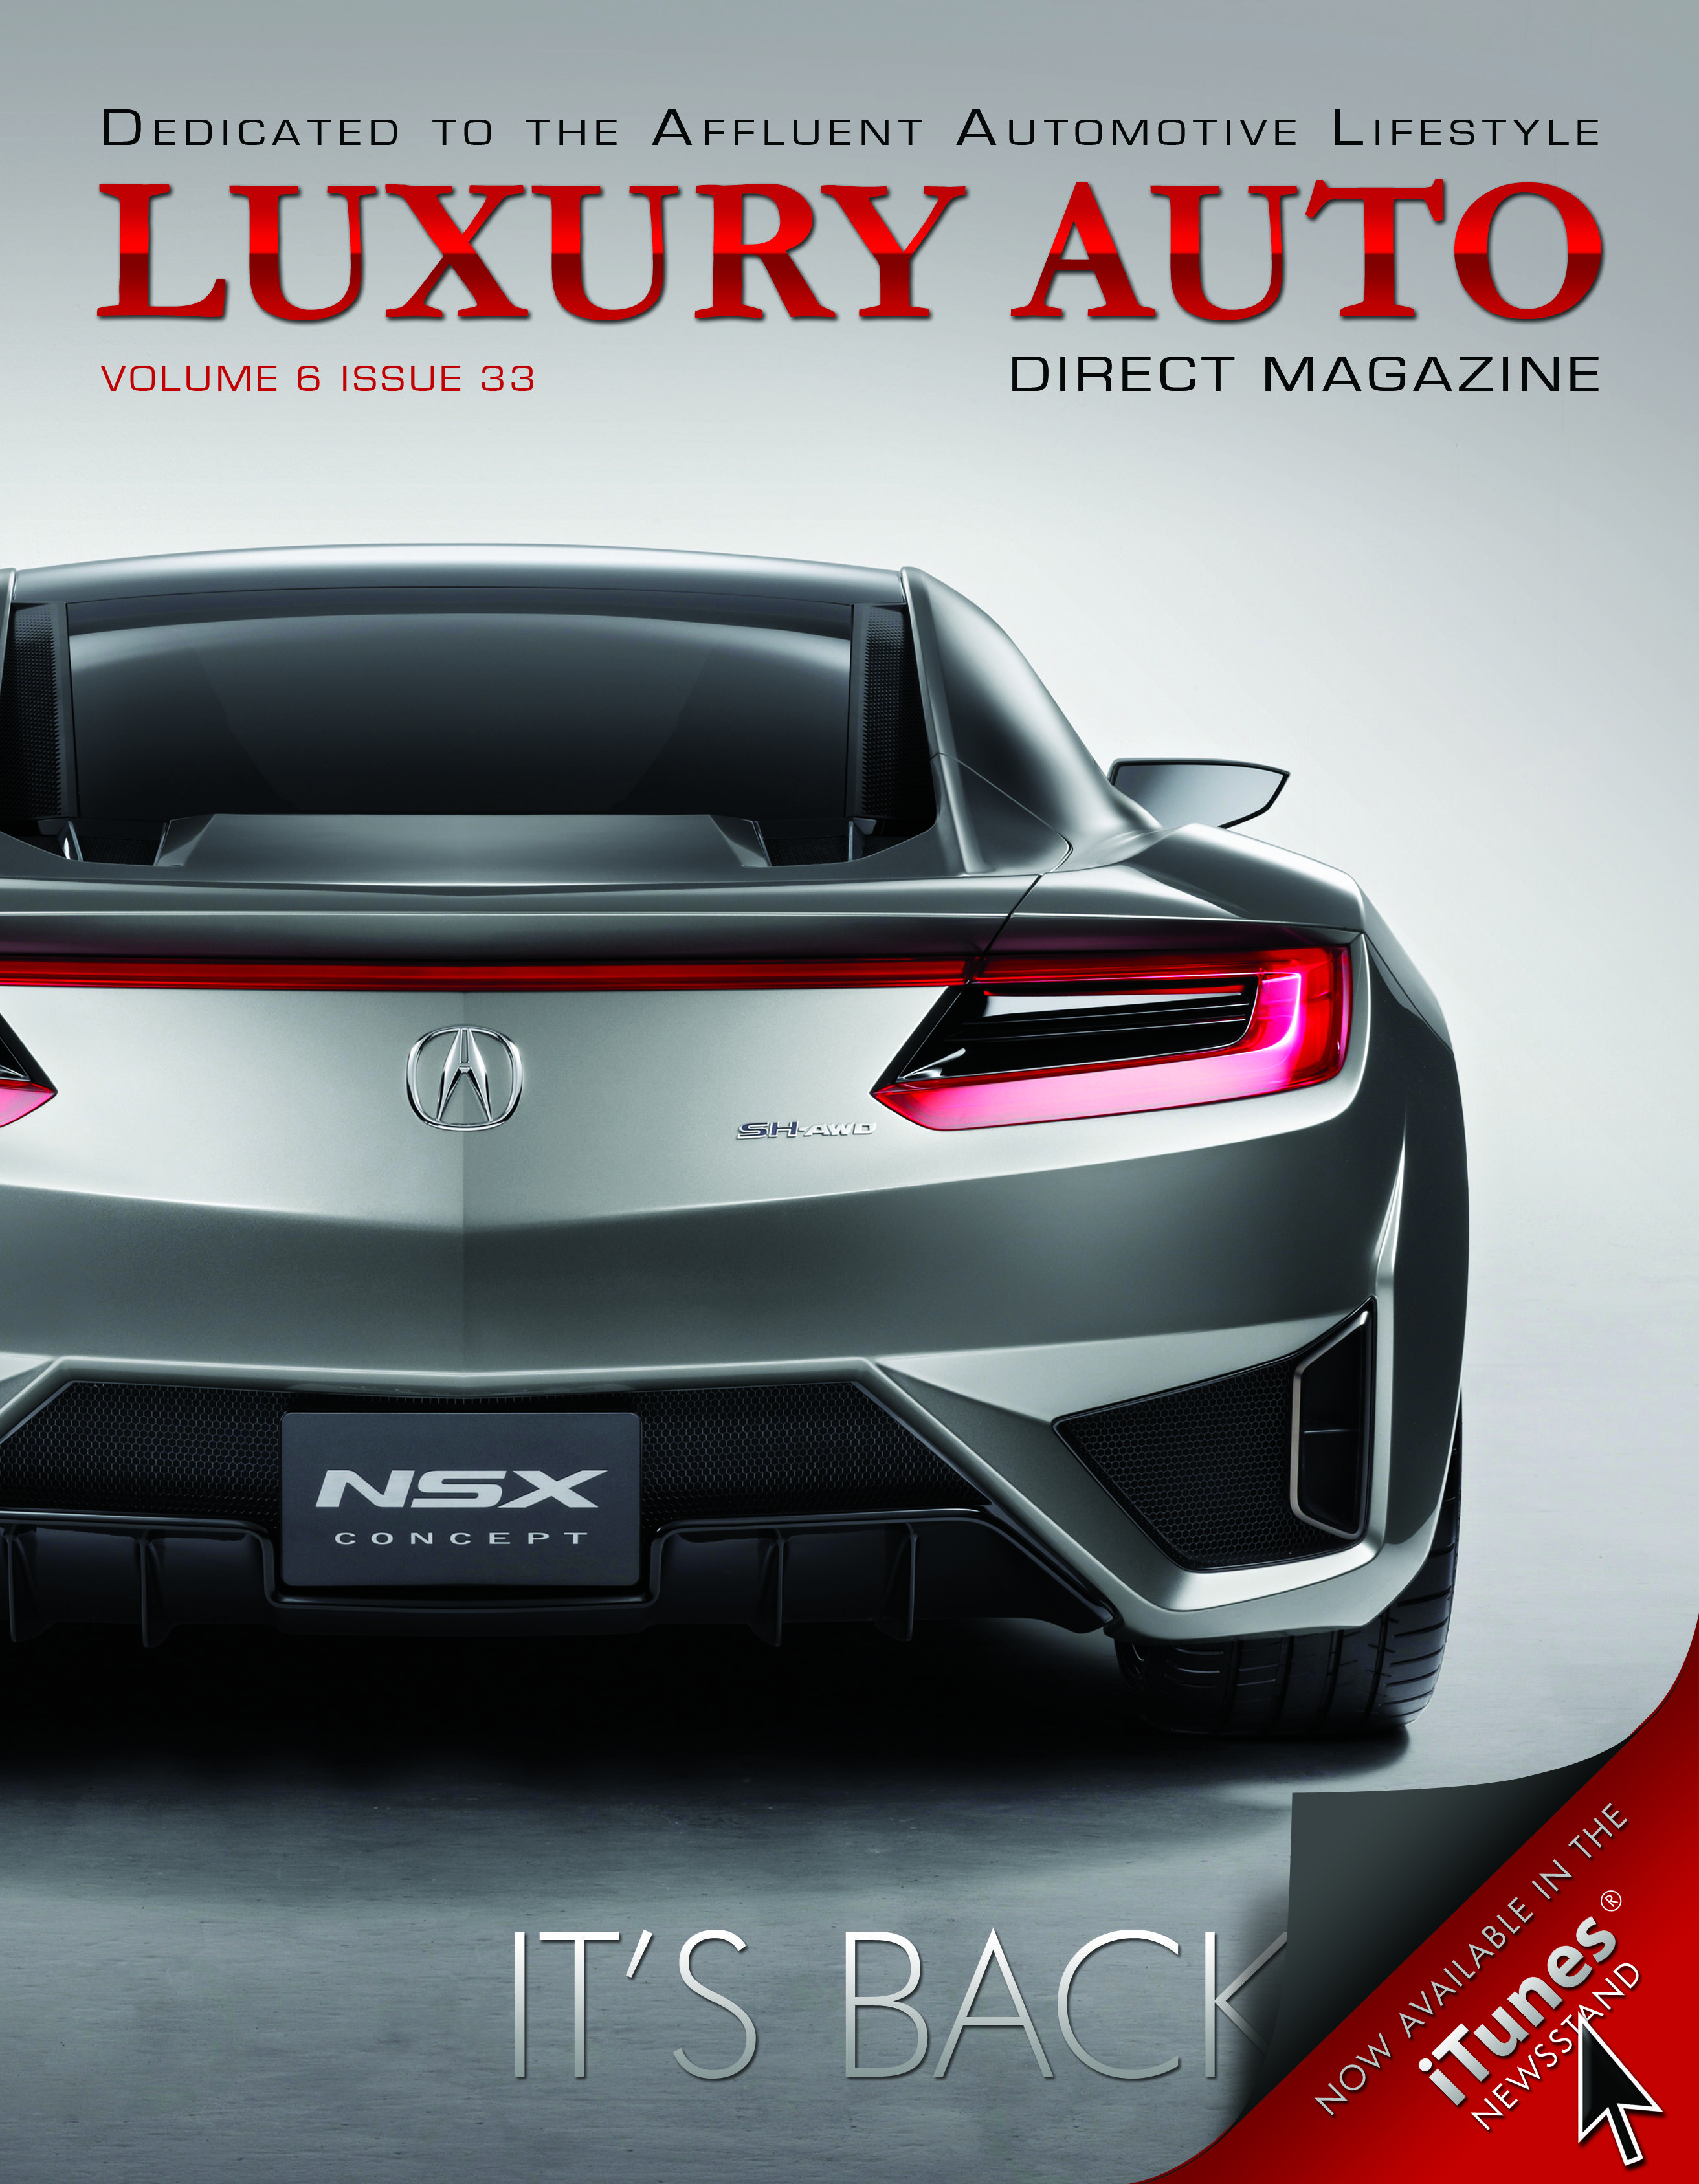 Issue 33 featuring the Acura NSX Concept Nsx, Acura nsx